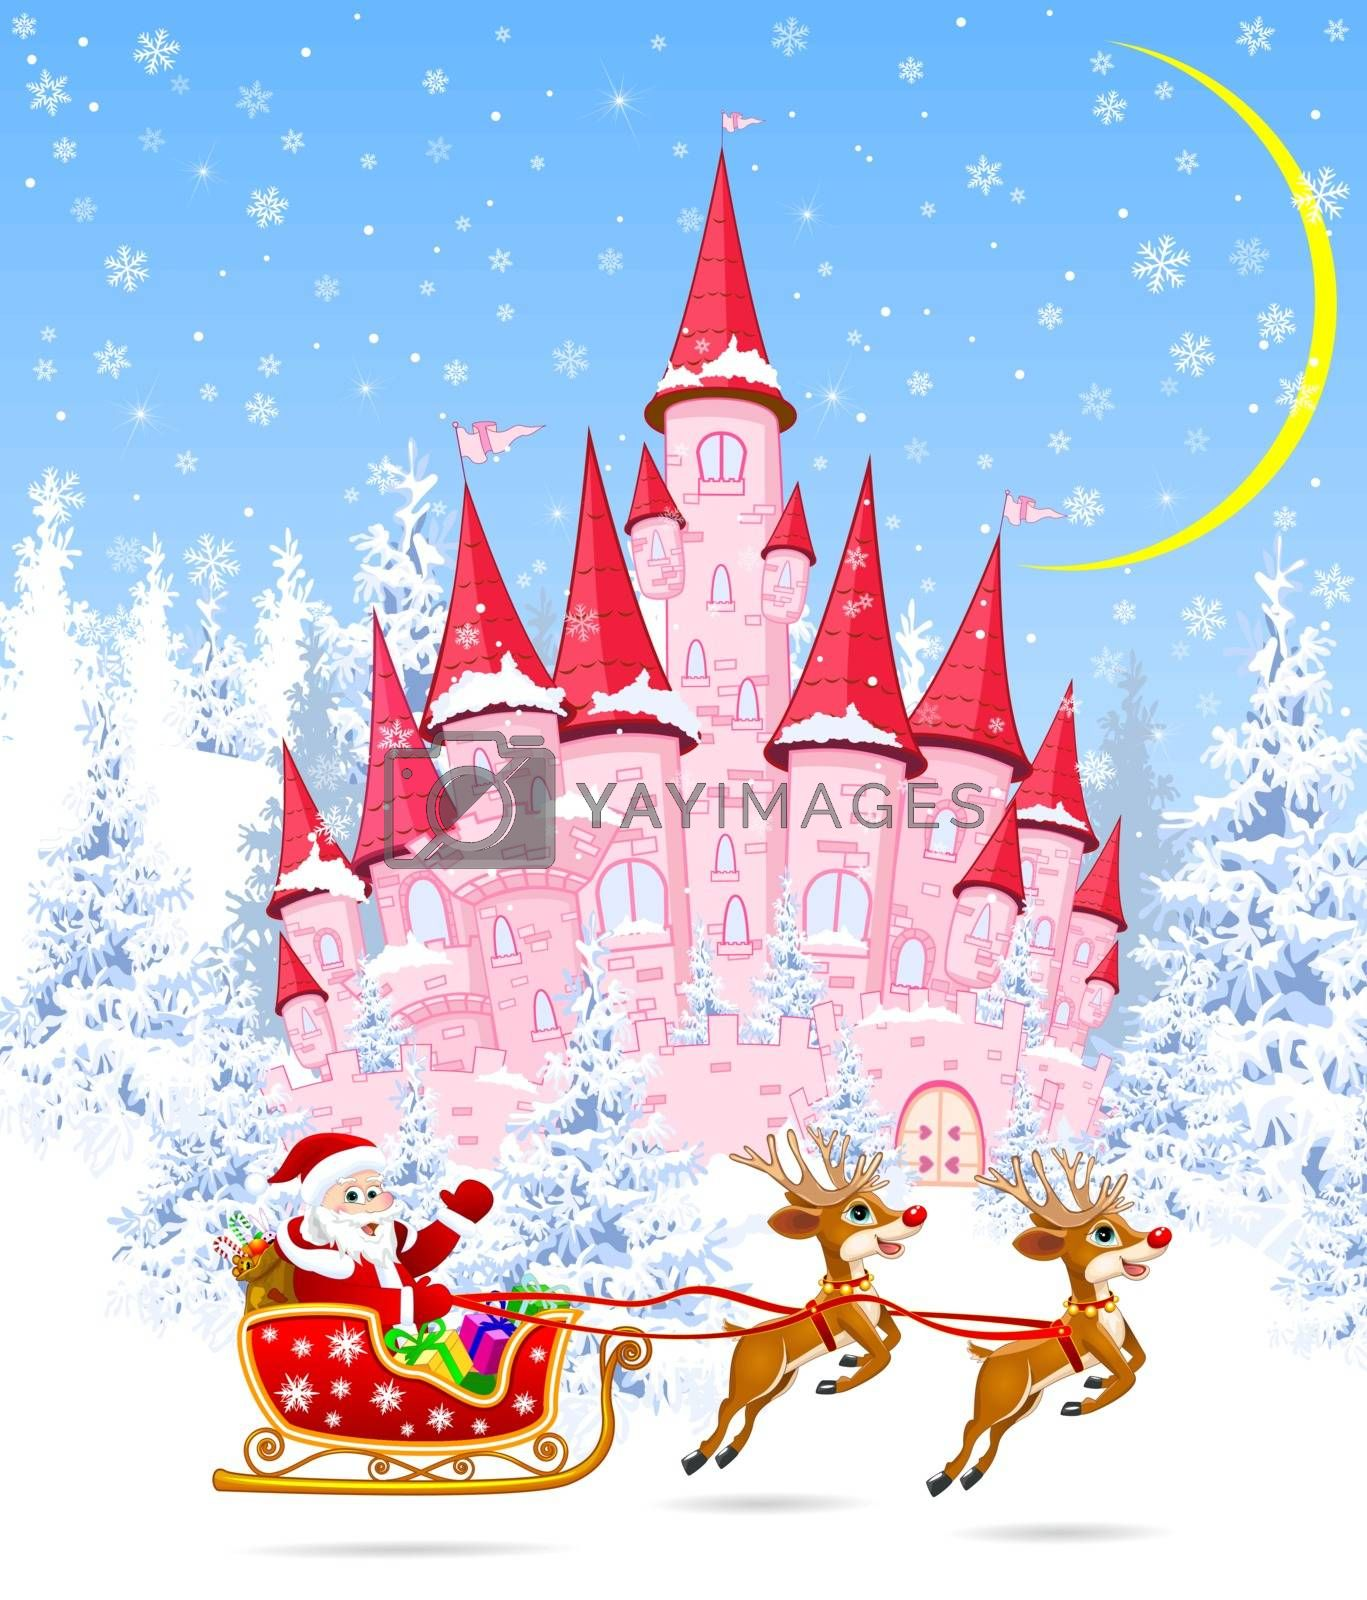 Santa on a sleigh on the background of the castle and the winter forest. Cartoon pink castle on the background of winter snow-covered forest. Winter landscape with a pink castle in the woods, snow, night, moon.